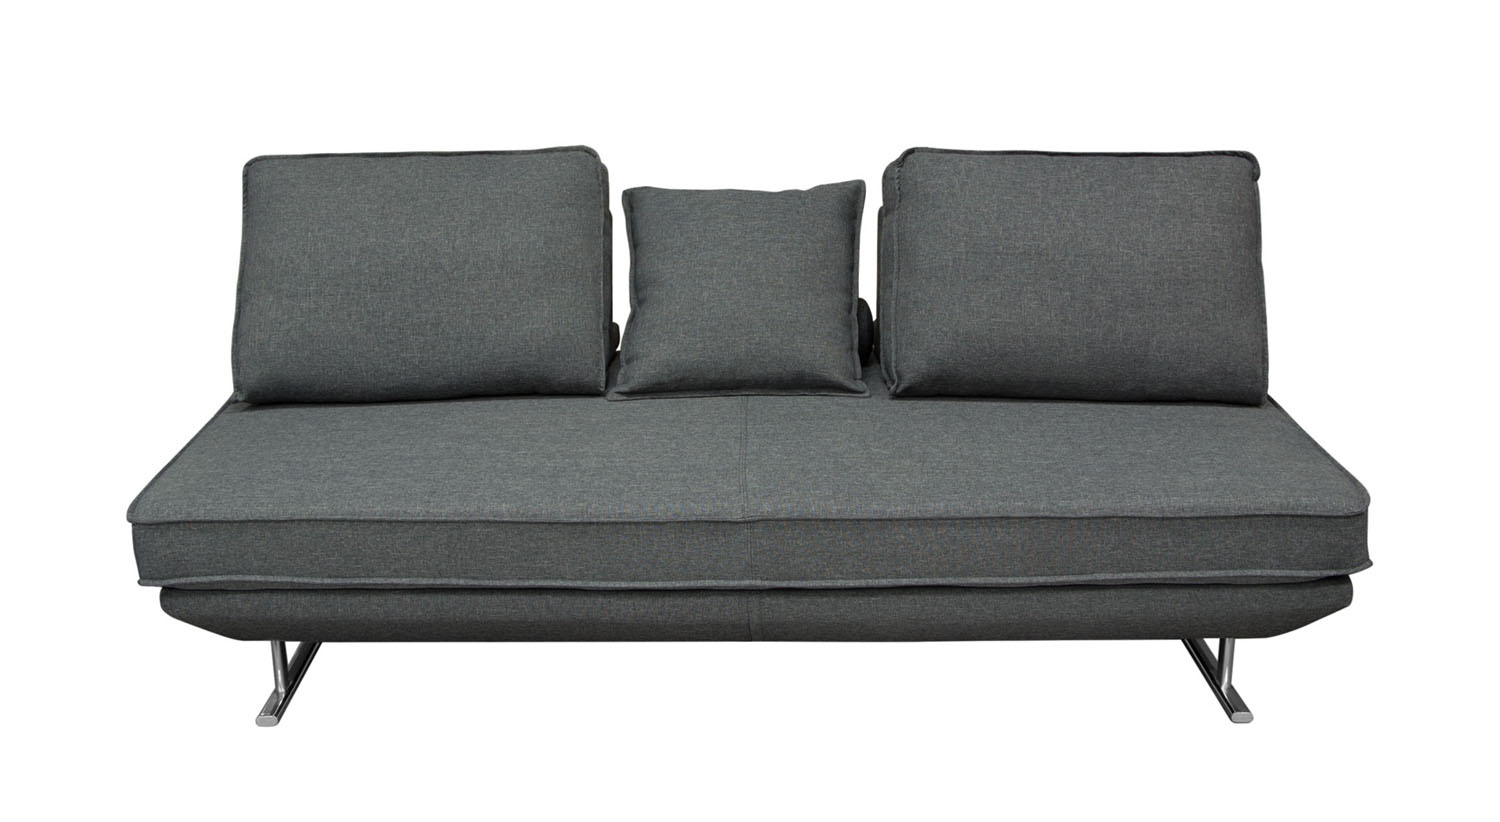 Dolce Lounge Seating Platform with Moveable Backrest Supports - Grey Fabric